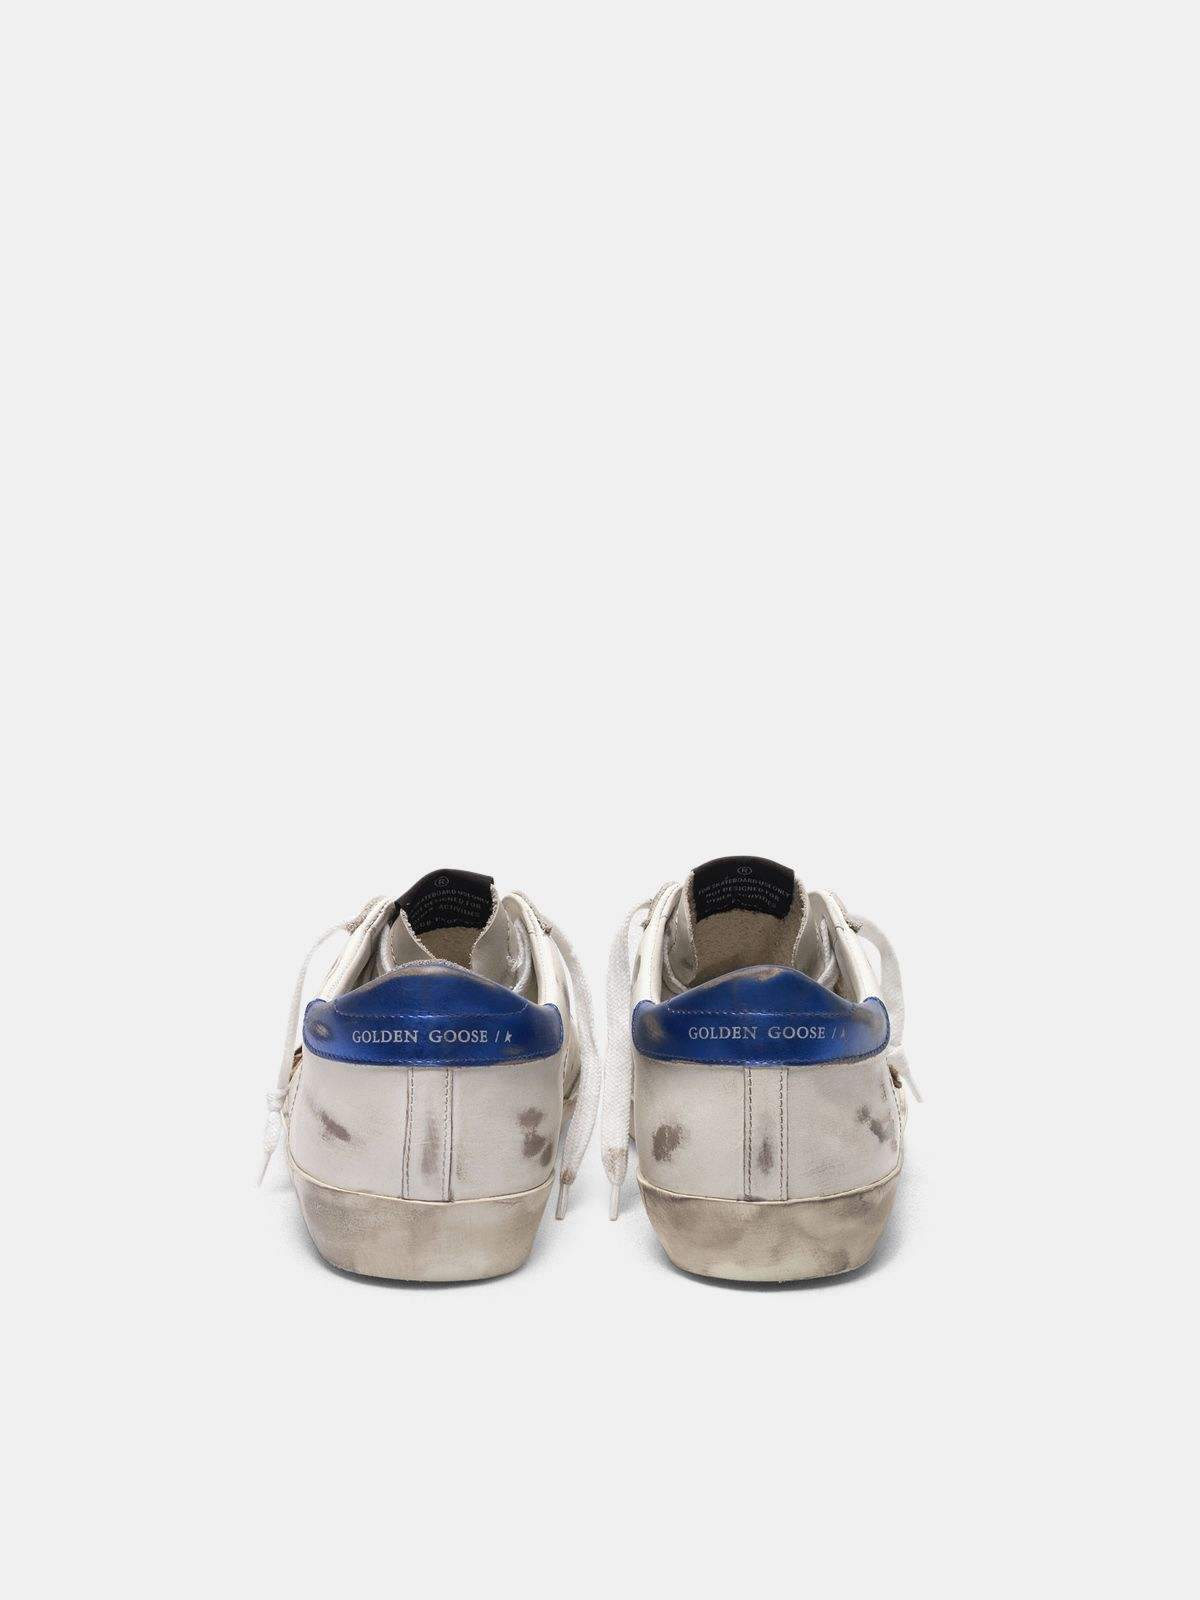 Golden Goose - Super-Star sneakers with leopard-print star and blue heel tab   in